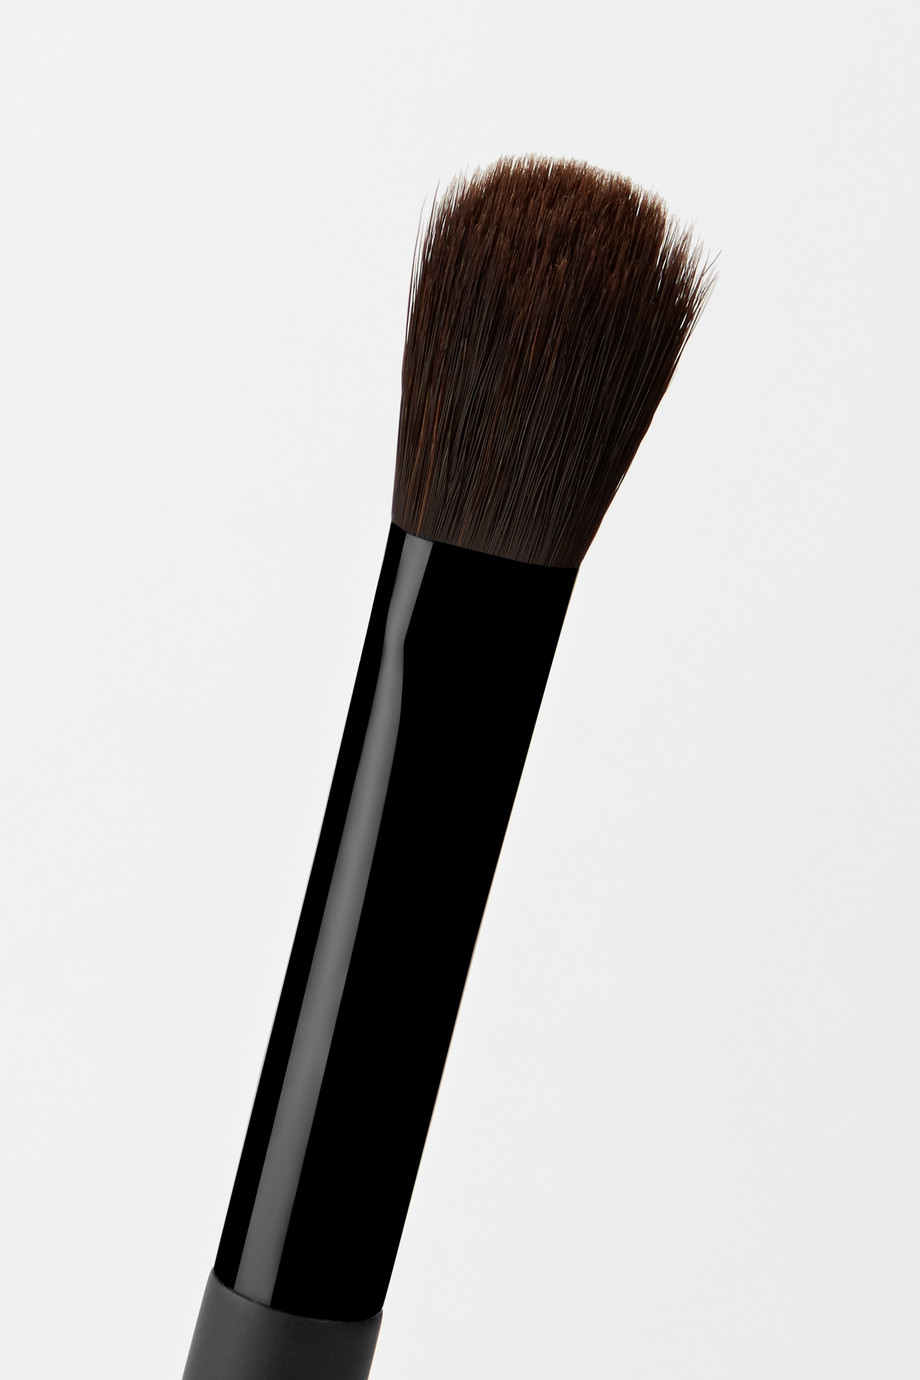 RAE MORRIS Jishaku 11 Vegan Small Oval Shadow Brush